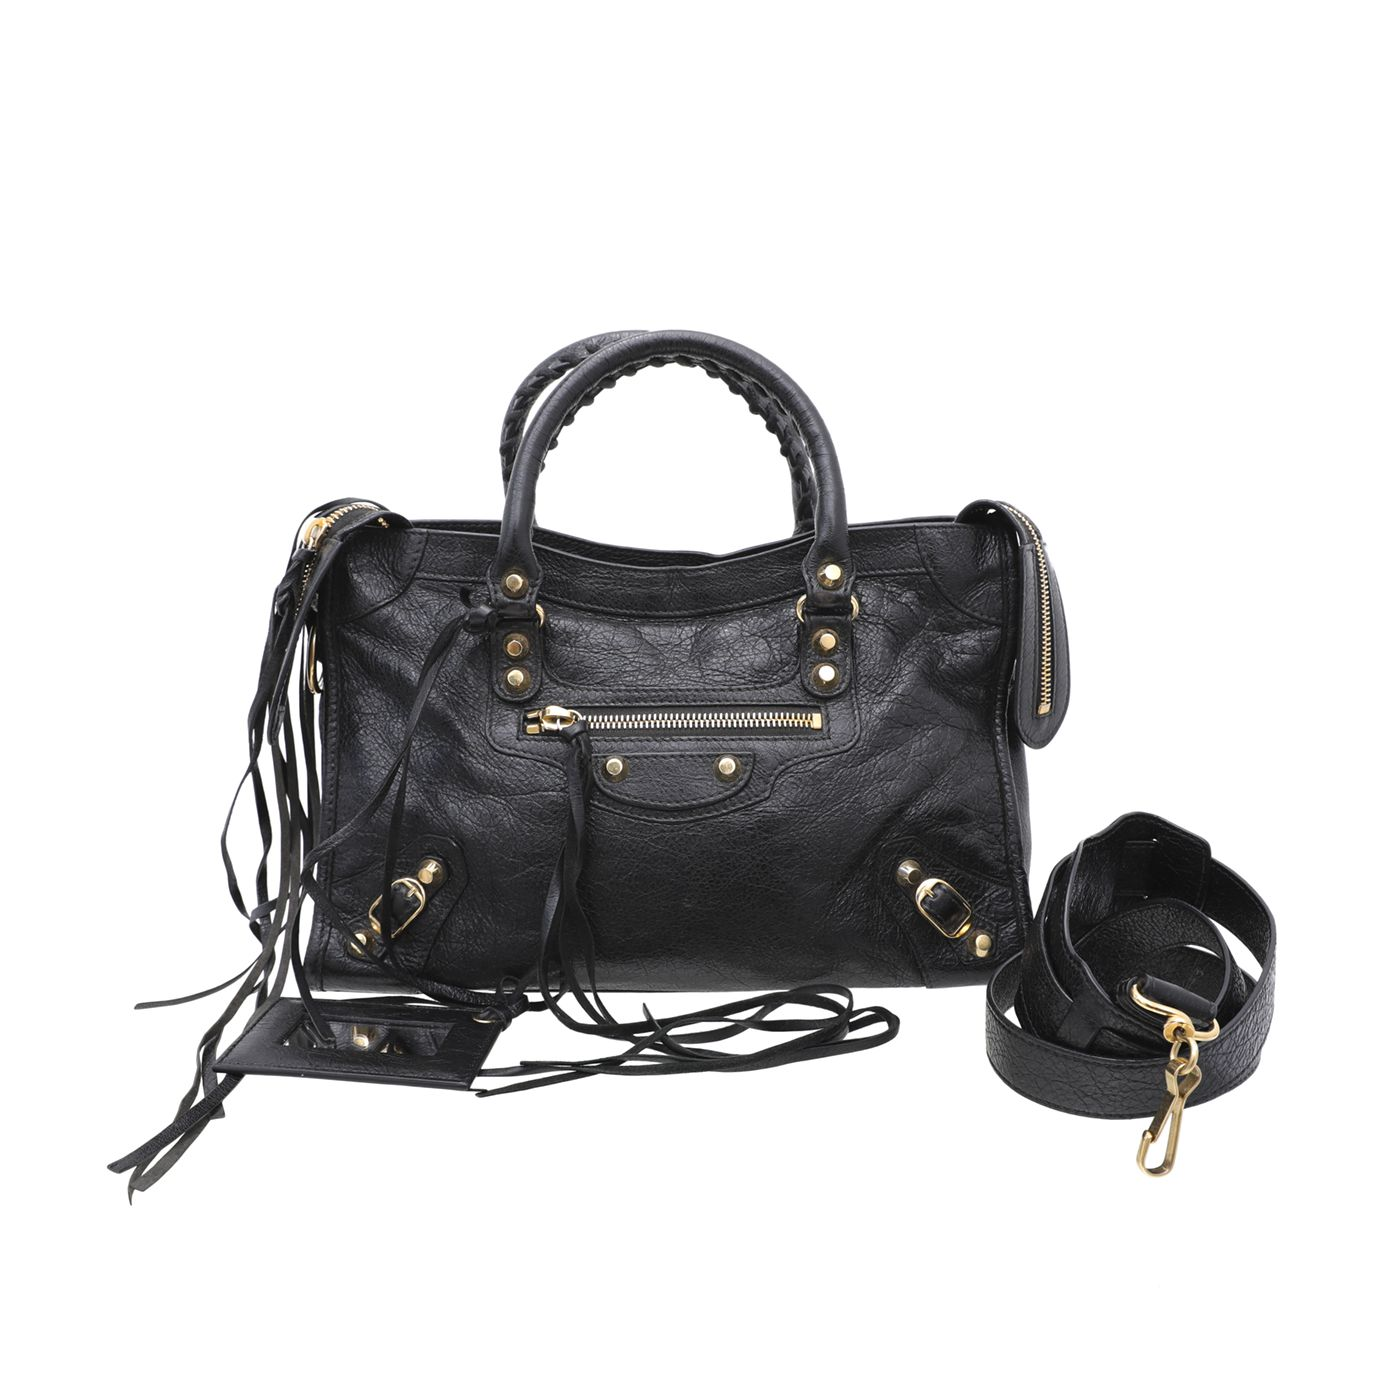 Balenciaga Black Classic Gold City Small Bag